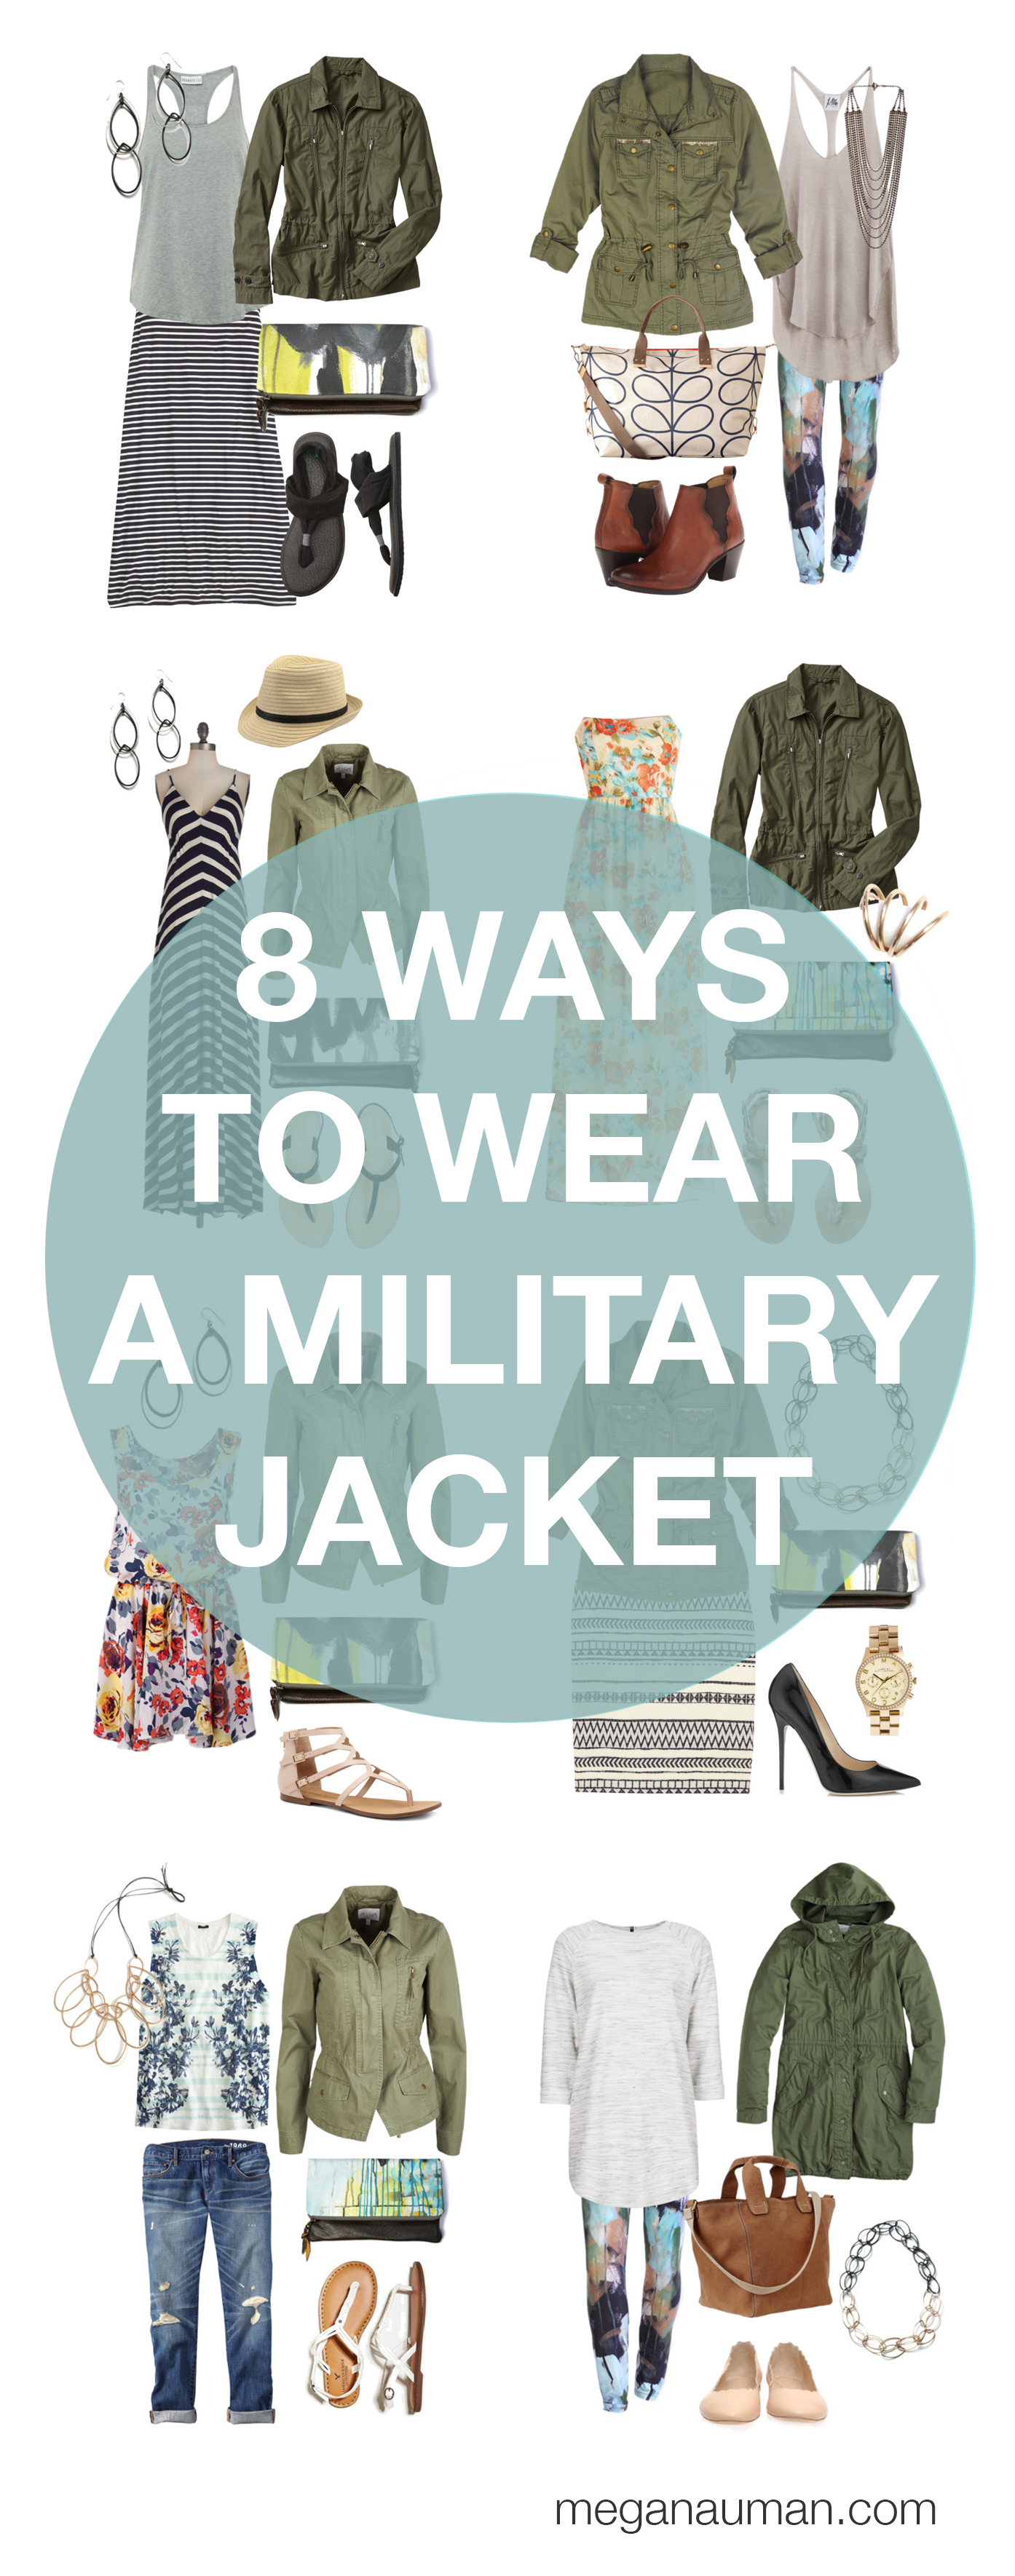 how to wear a military jacket - 8 ways to style your military jacket via megan auman